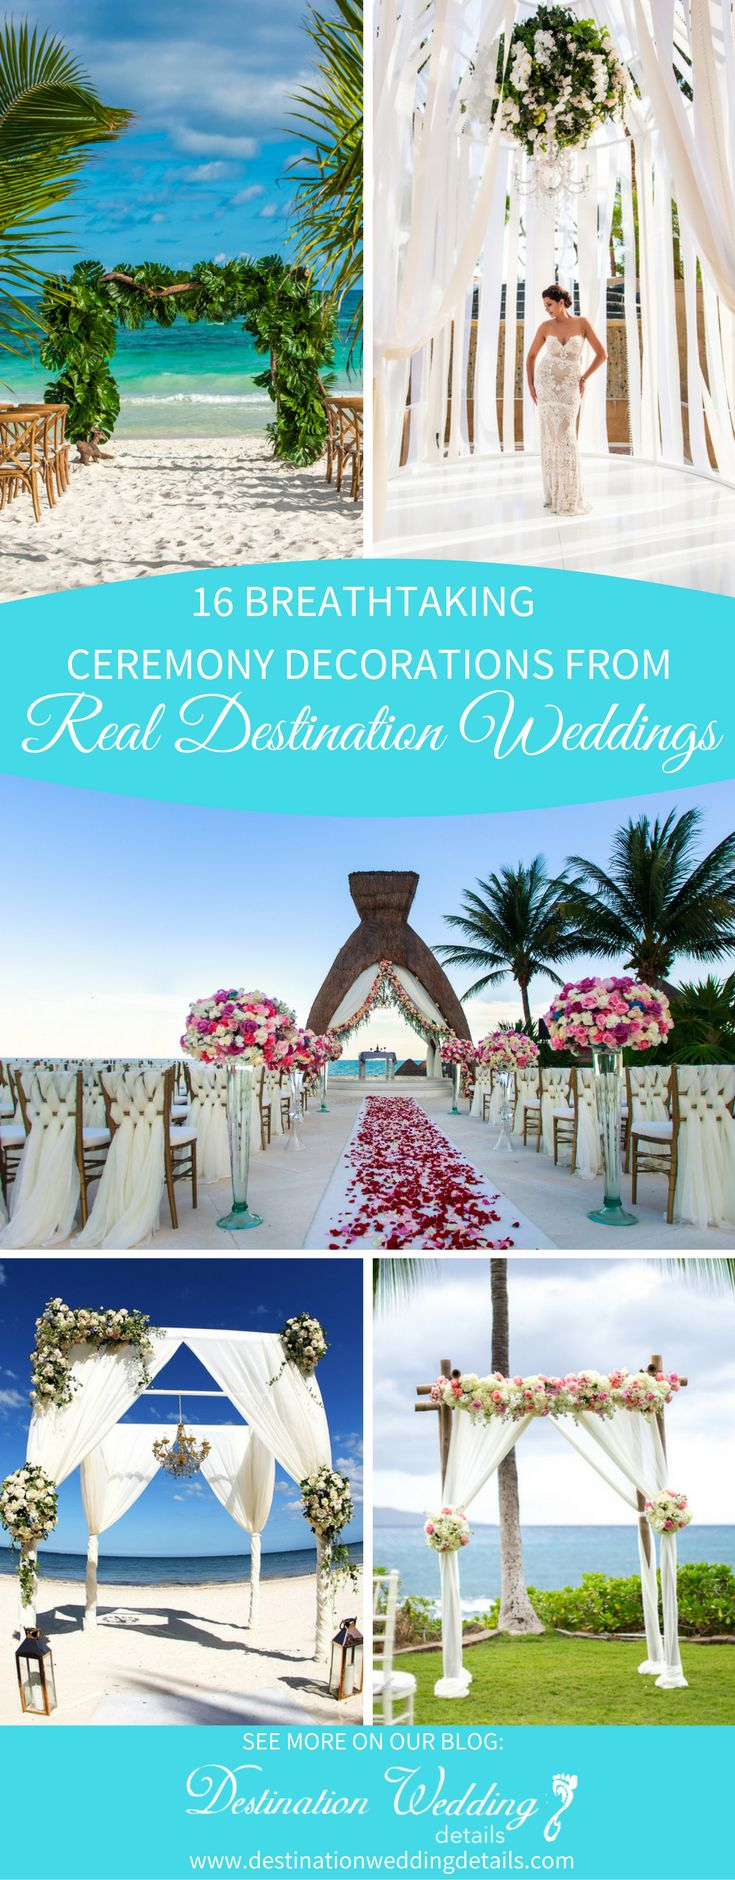 These 16 outdoor beach wedding ceremony decorations are beautiful! From rustic to elegant, they make the most beautiful backdrop for a destination wedding.